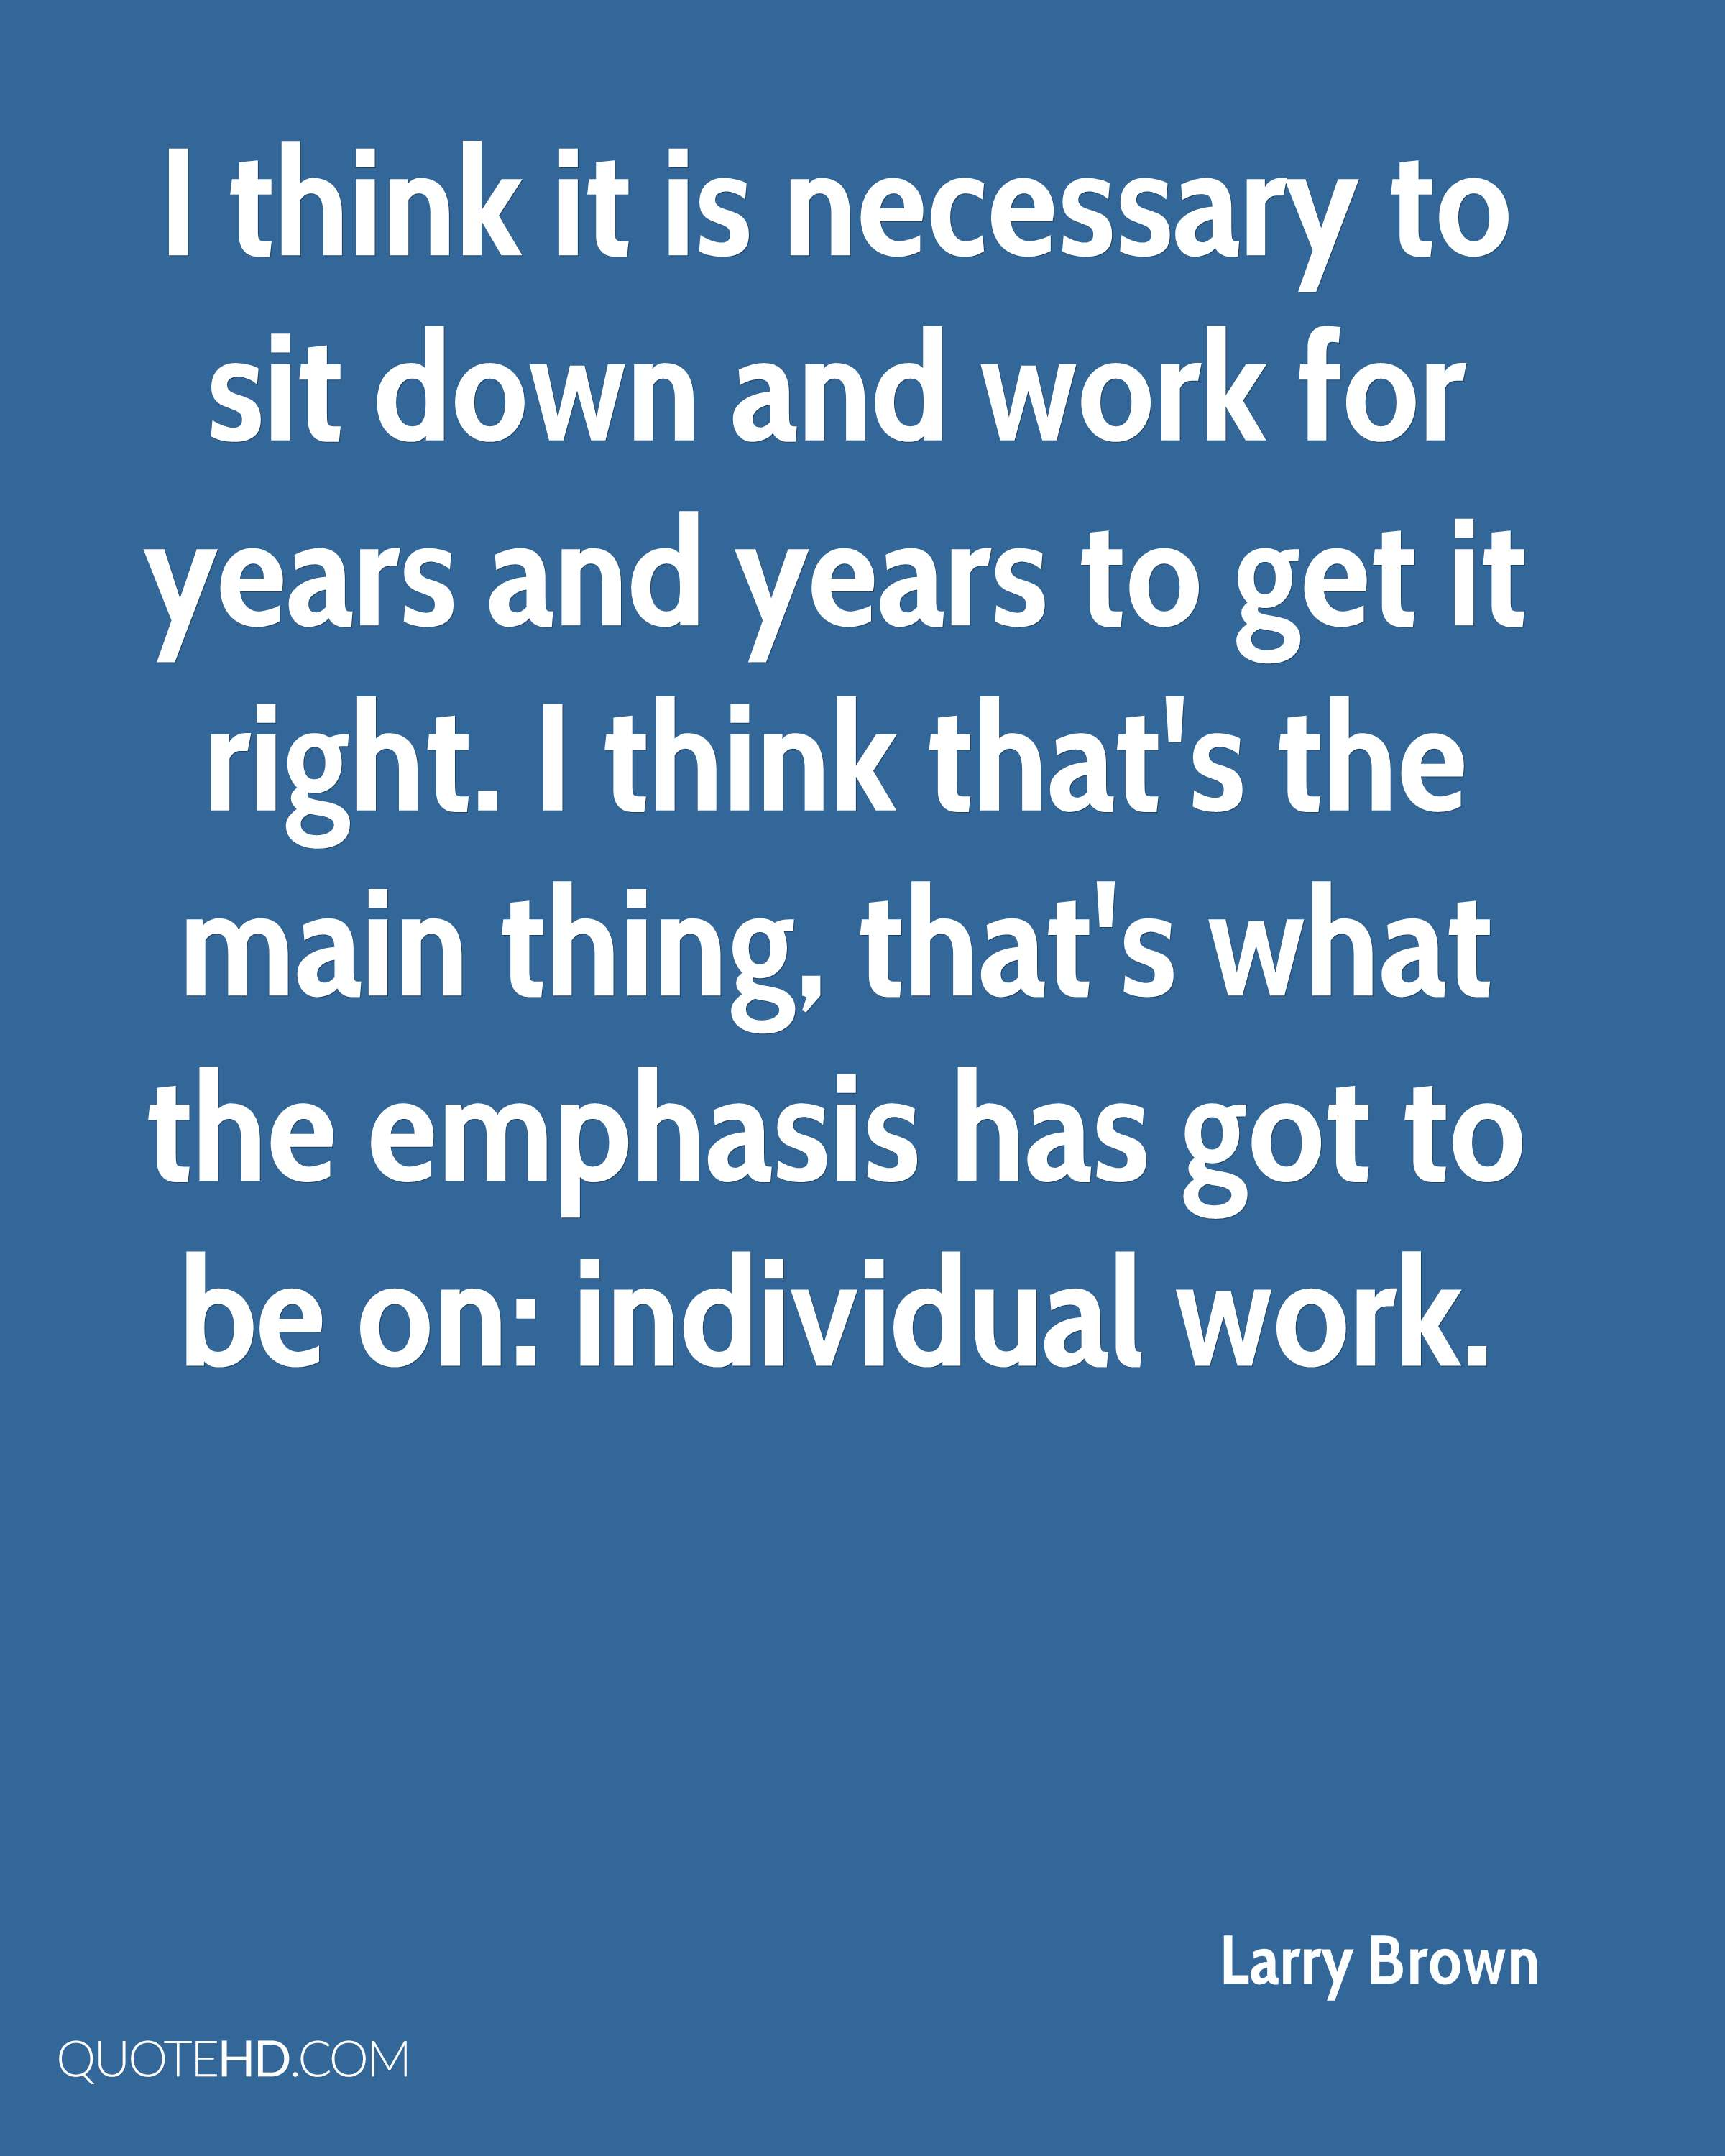 I think it is necessary to sit down and work for years and years to get it right. I think that's the main thing, that's what the emphasis has got to be on: individual work.